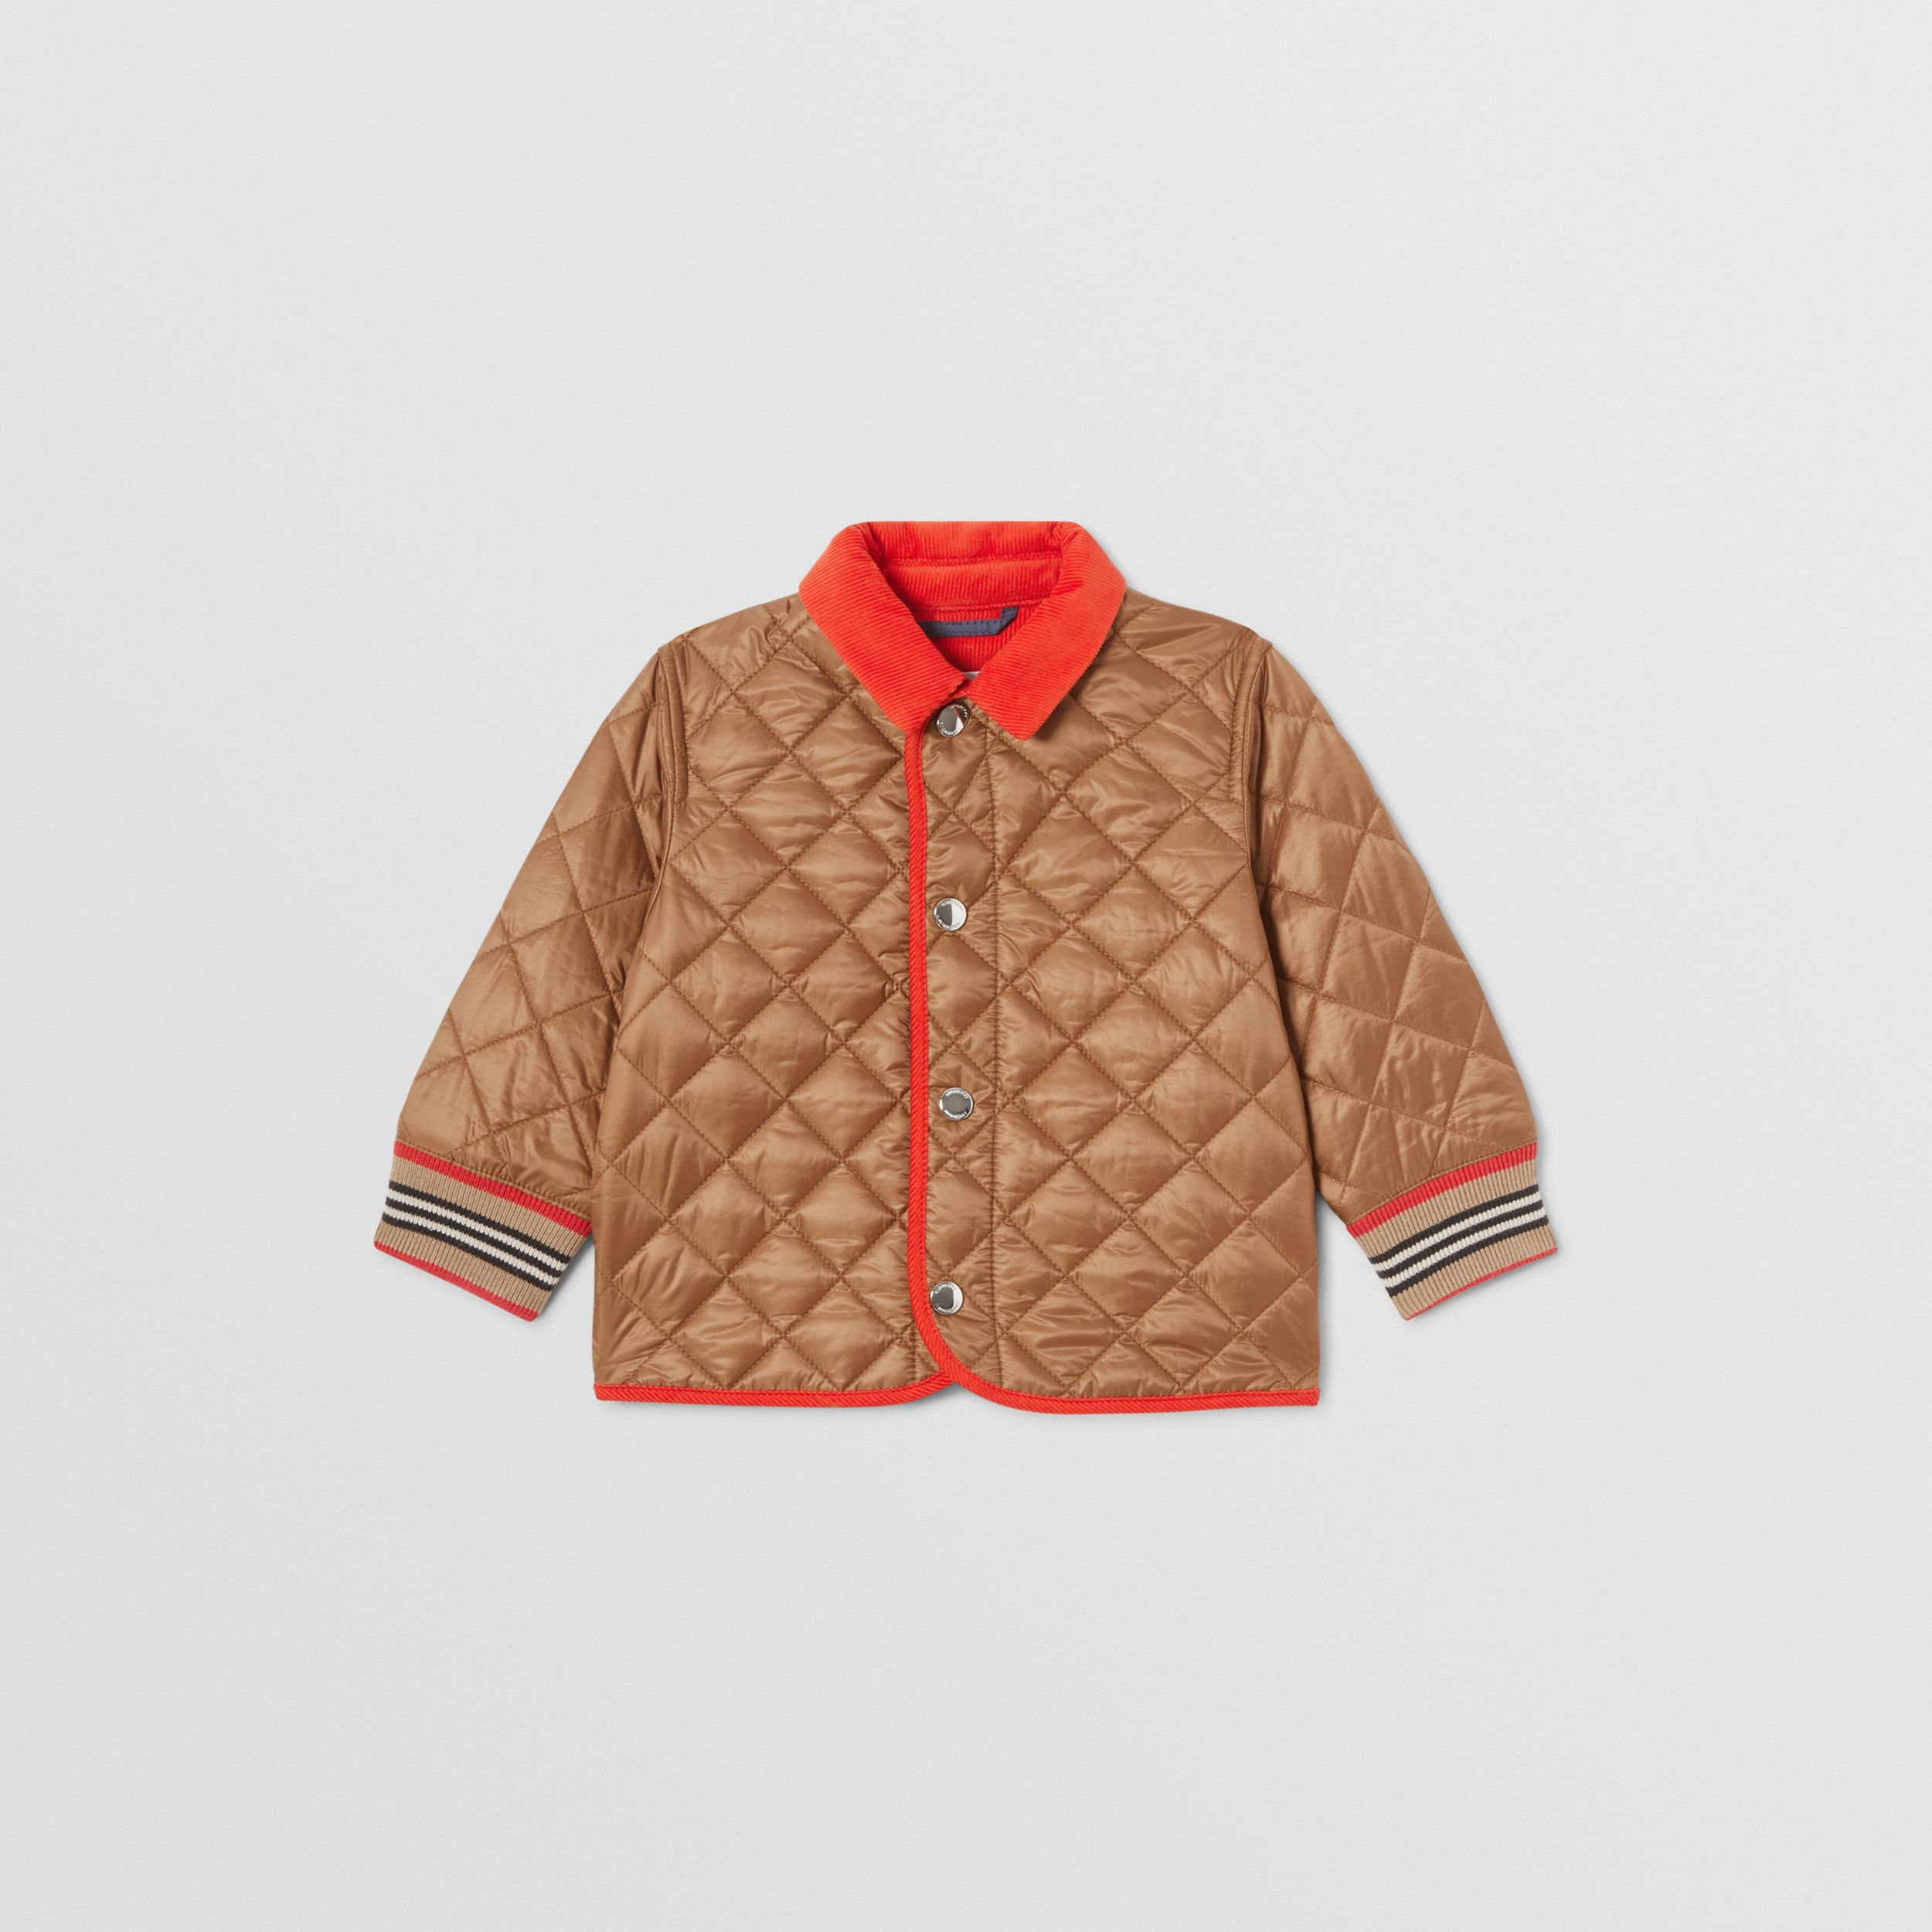 Corduroy Trim Lightweight Diamond Quilted Jacket in Bronze - Children | Burberry - 1